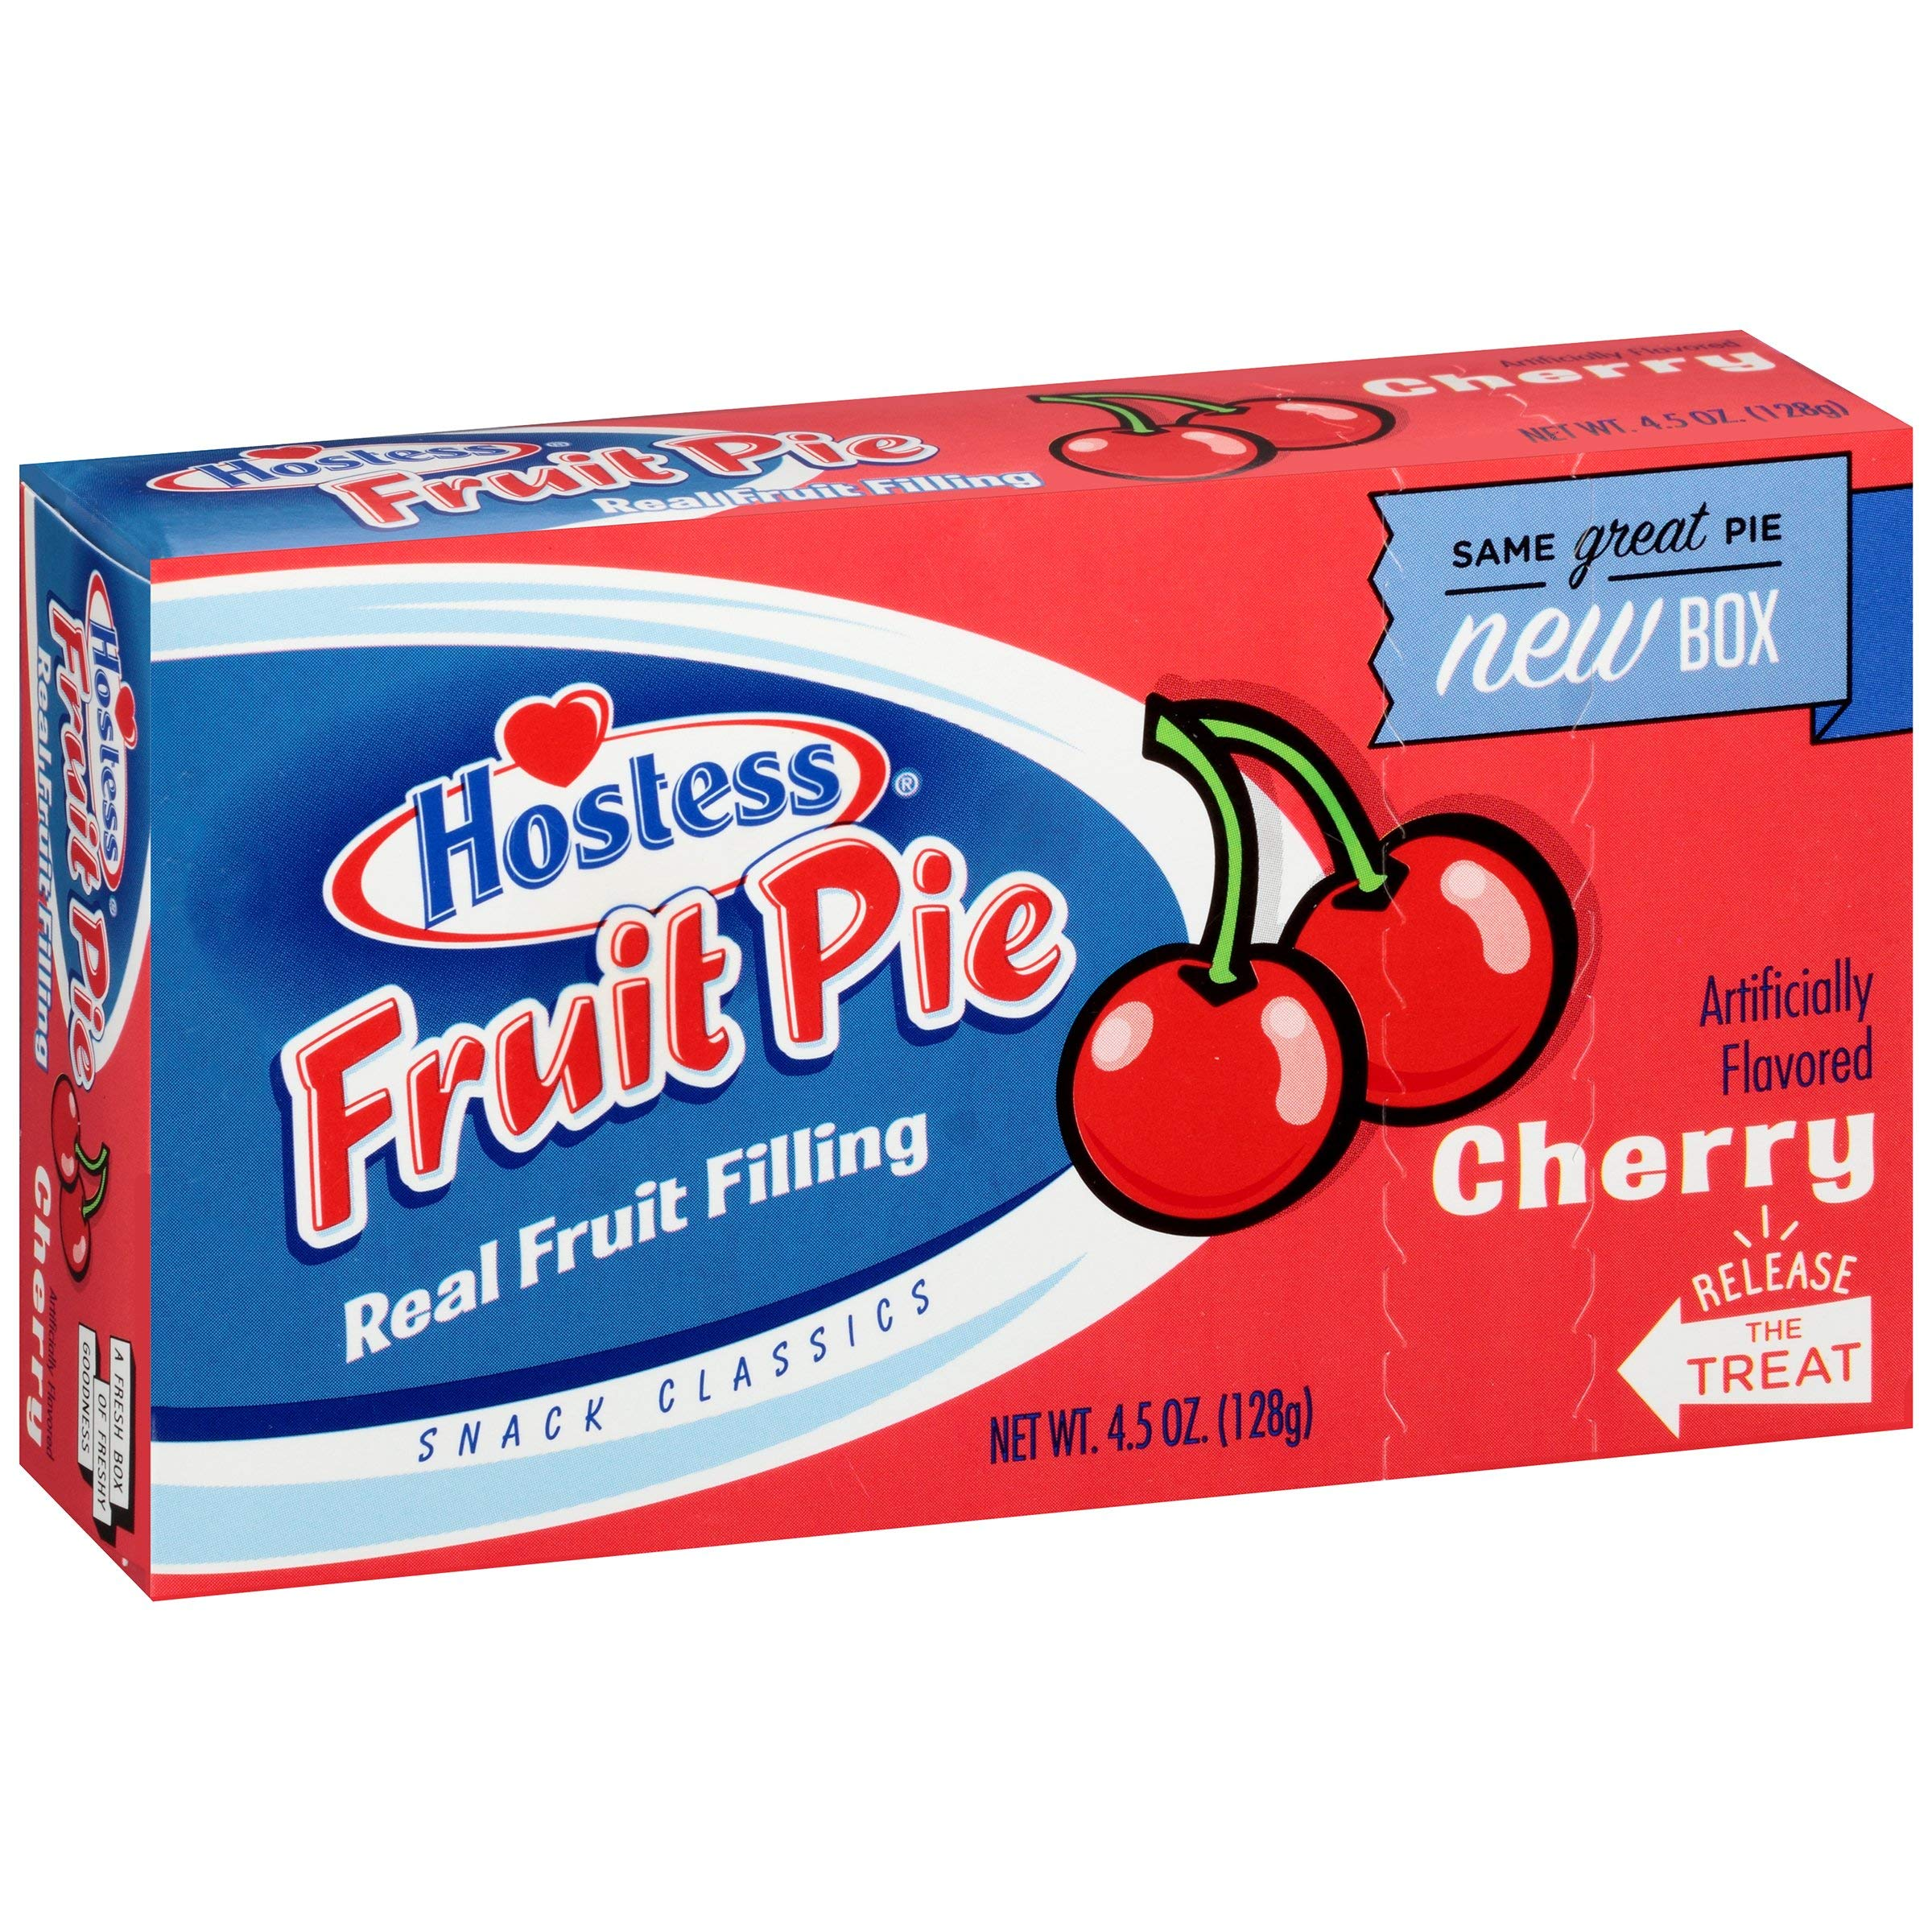 Hostess Cherry Fruit Pies 4.5 oz (Pack of 8) by Hostess